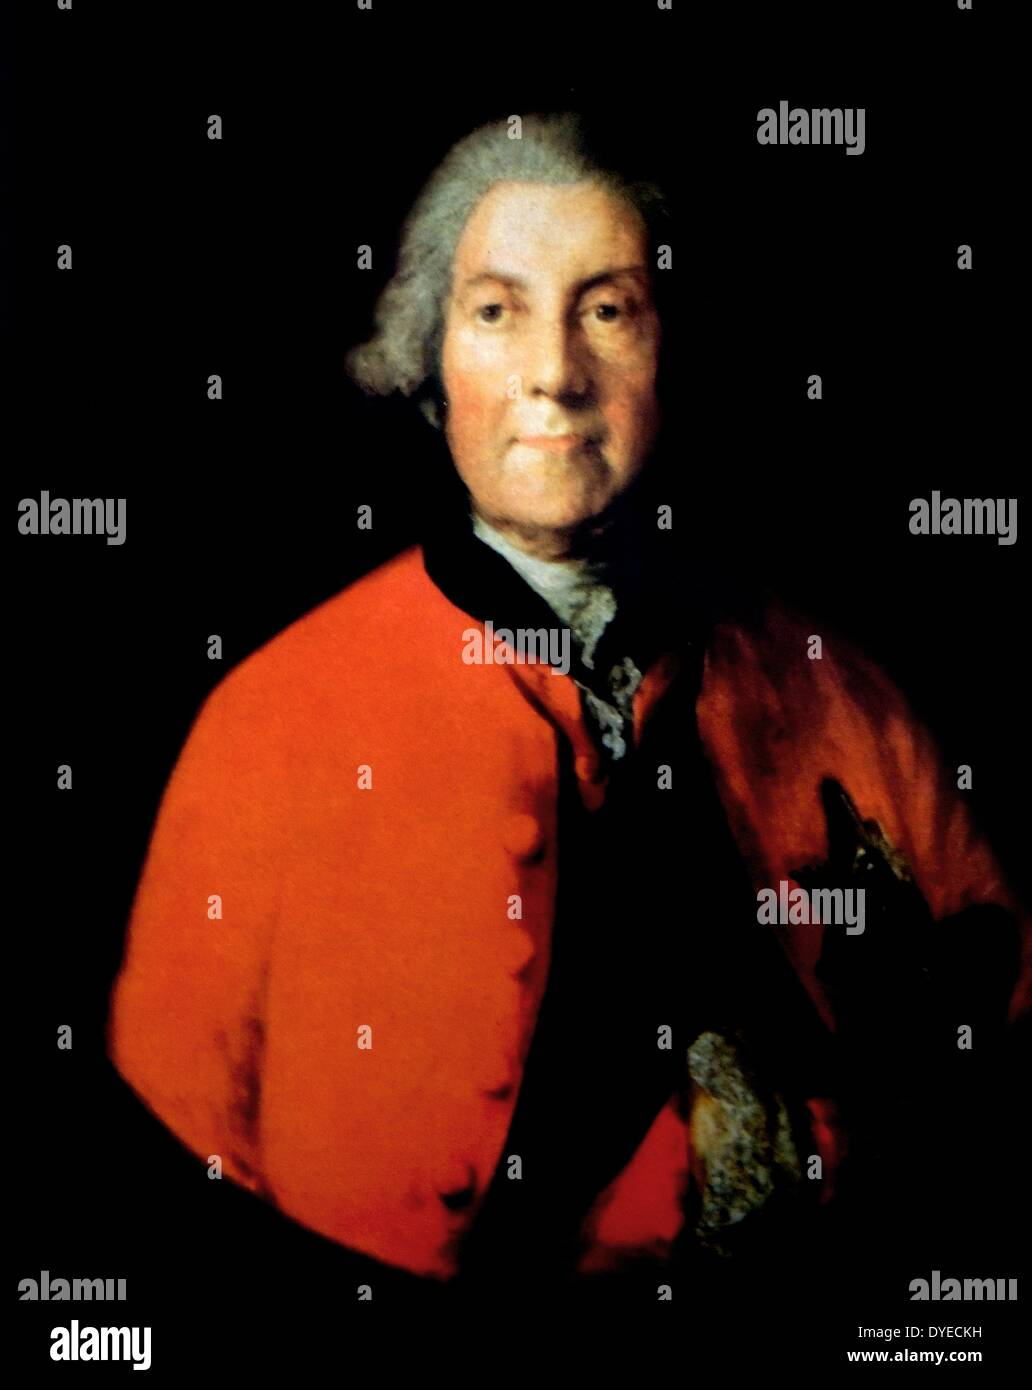 Lord John Russell, 4th Duke of Bedford - Stock Image